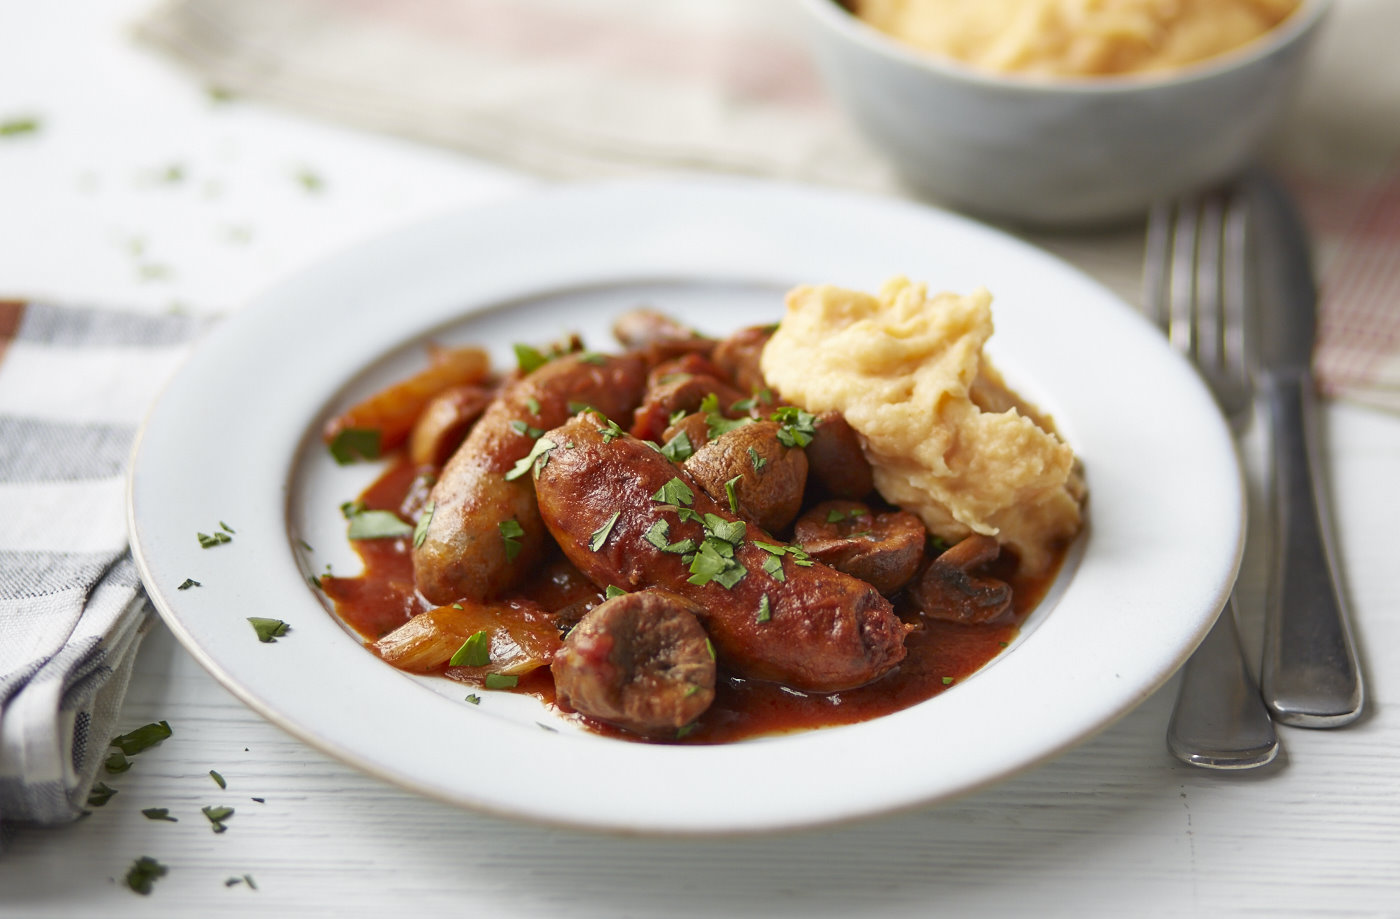 Kidney and Sausage Casserole